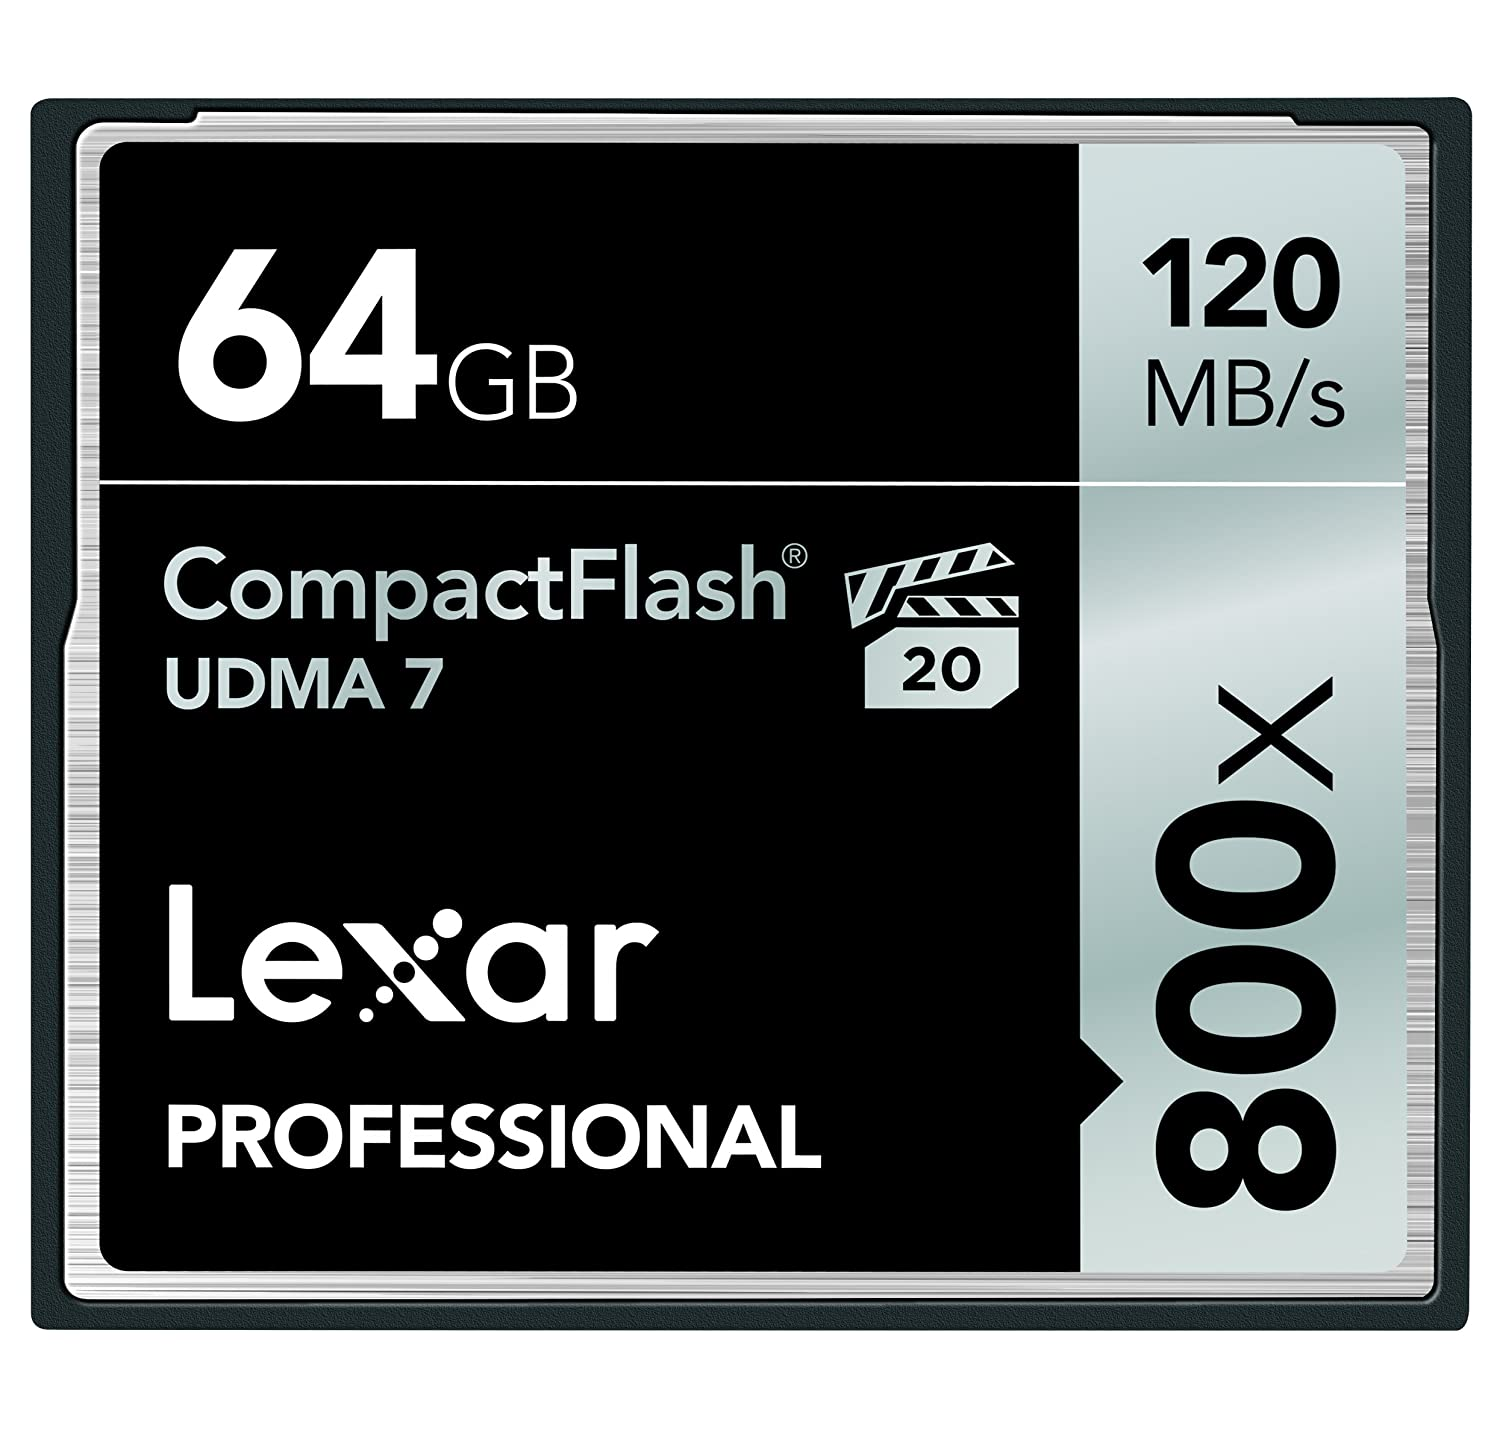 Lexar Professional 800 x 64GB VPG-20 CompactFlash Card (Up to 120MB/s Read) w/Free Image Rescue 5 Software LCF64GCRBNA800 LEXAR MEDIA INC